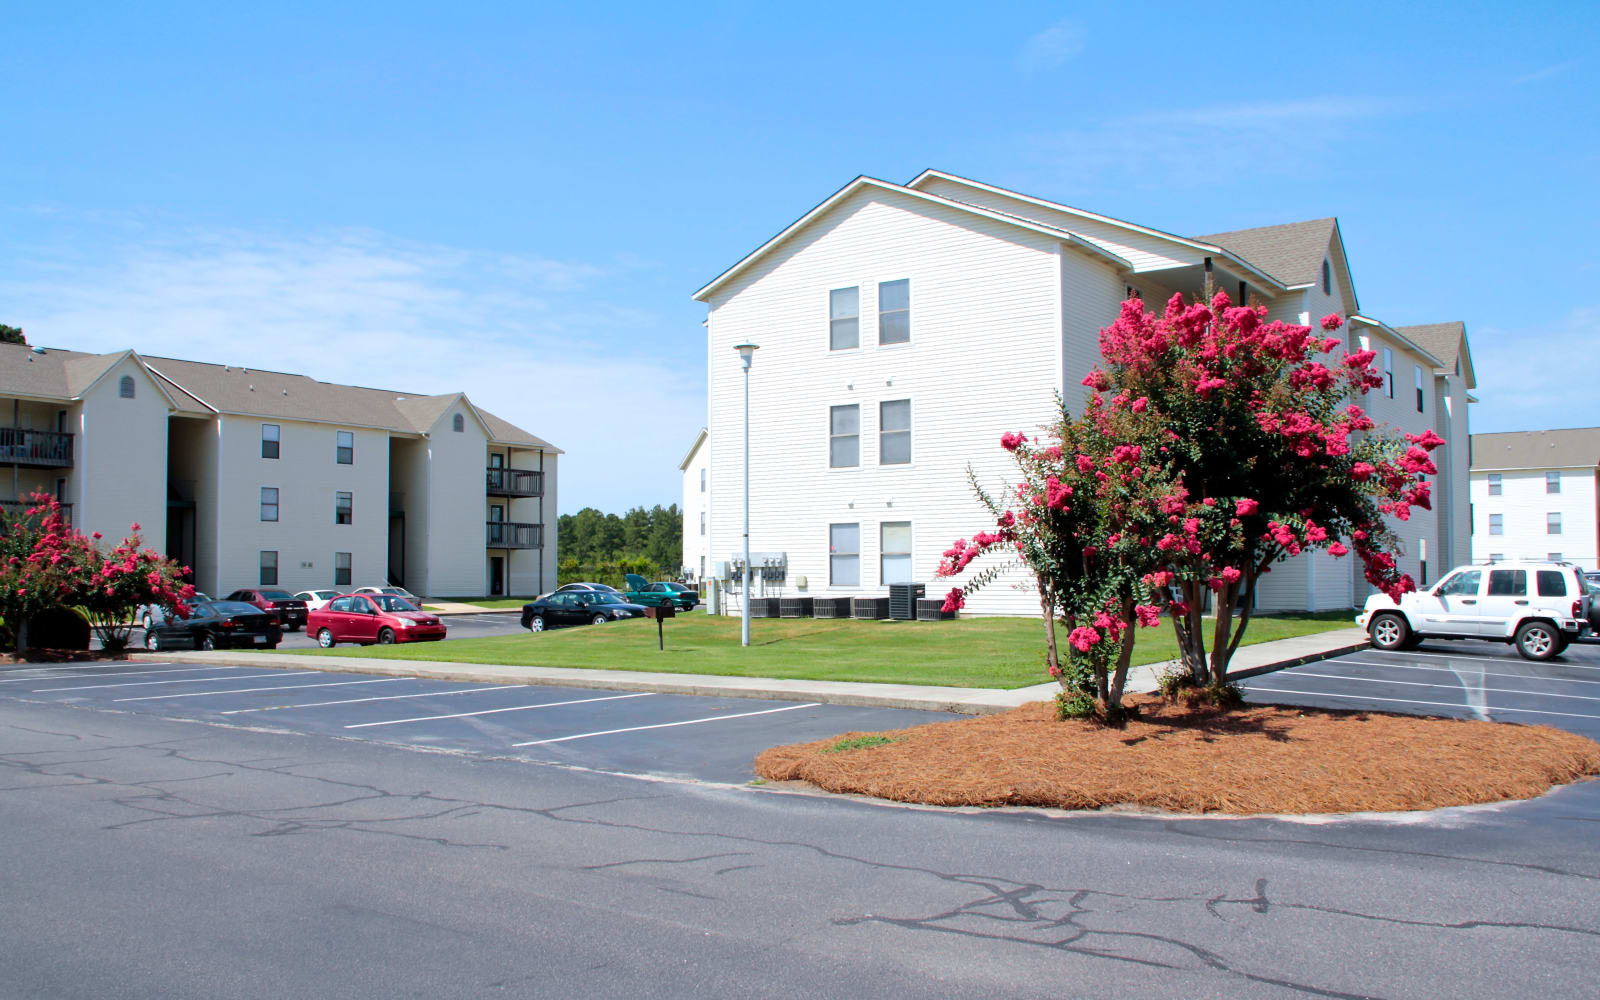 Well maintained grounds at Falcon Village Apartments in Fayetteville, North Carolina